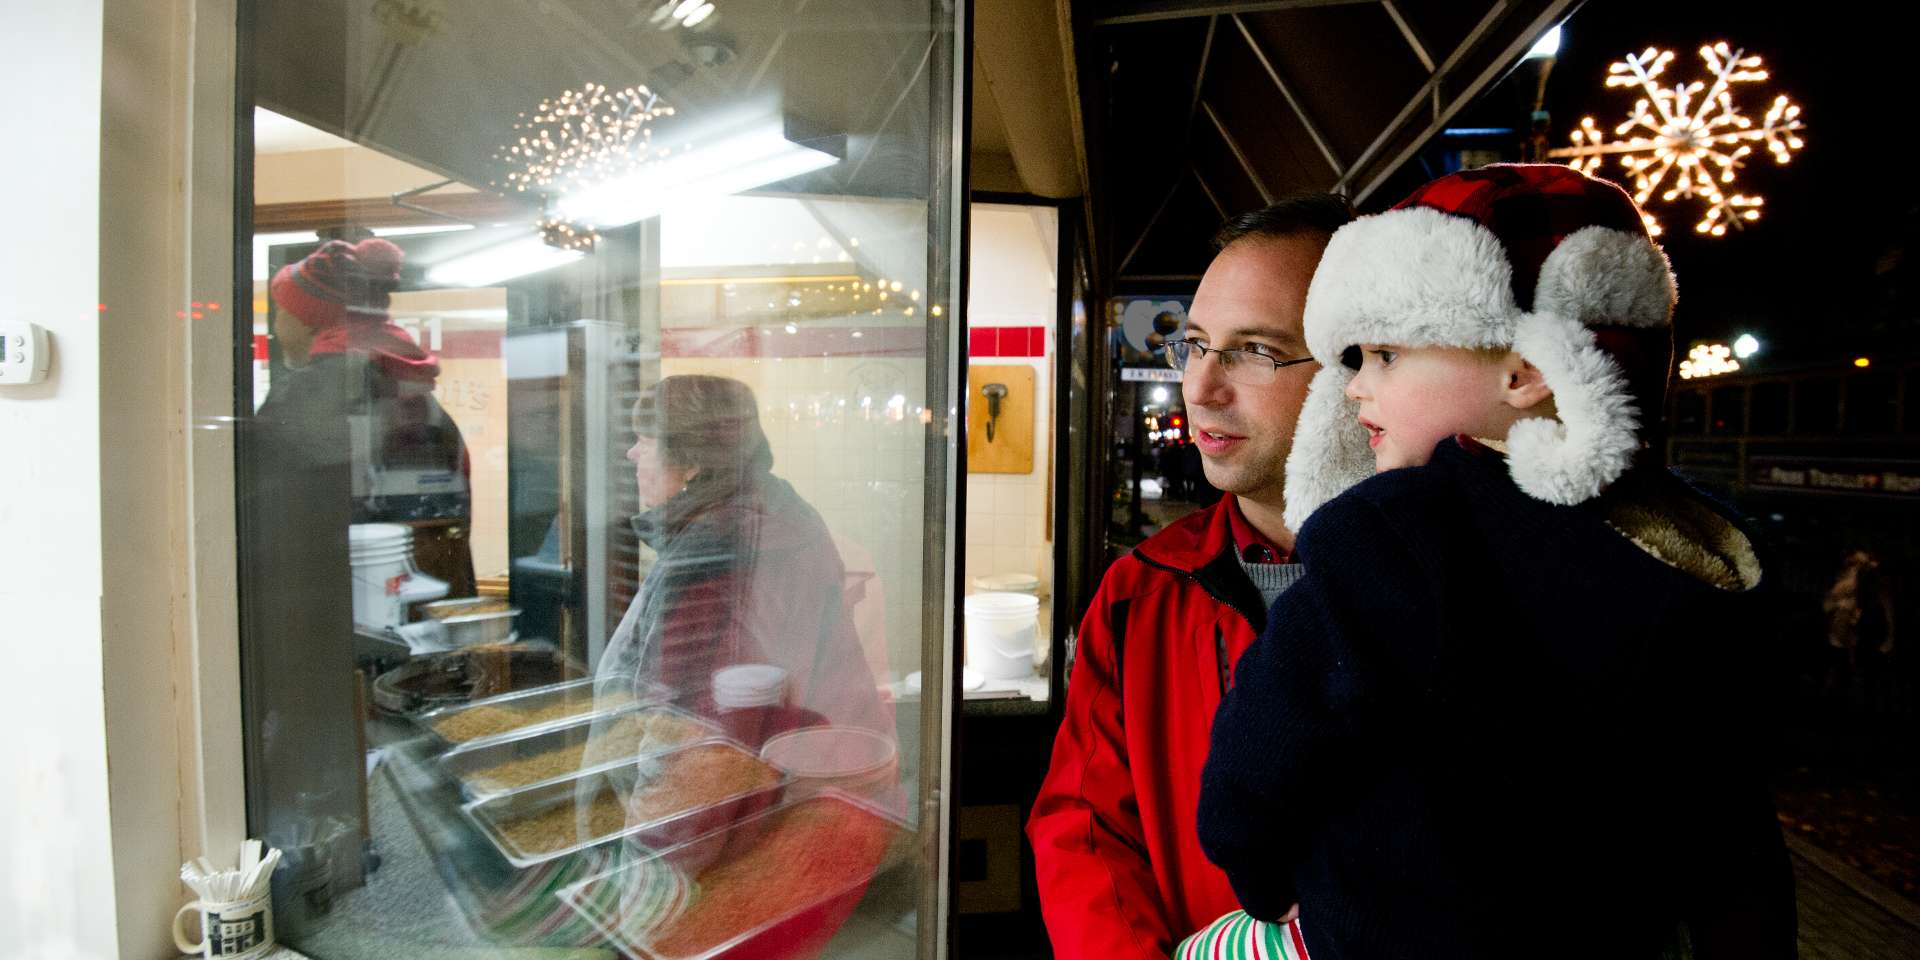 Man holding boy looking in the Schimpff's window at wintertime